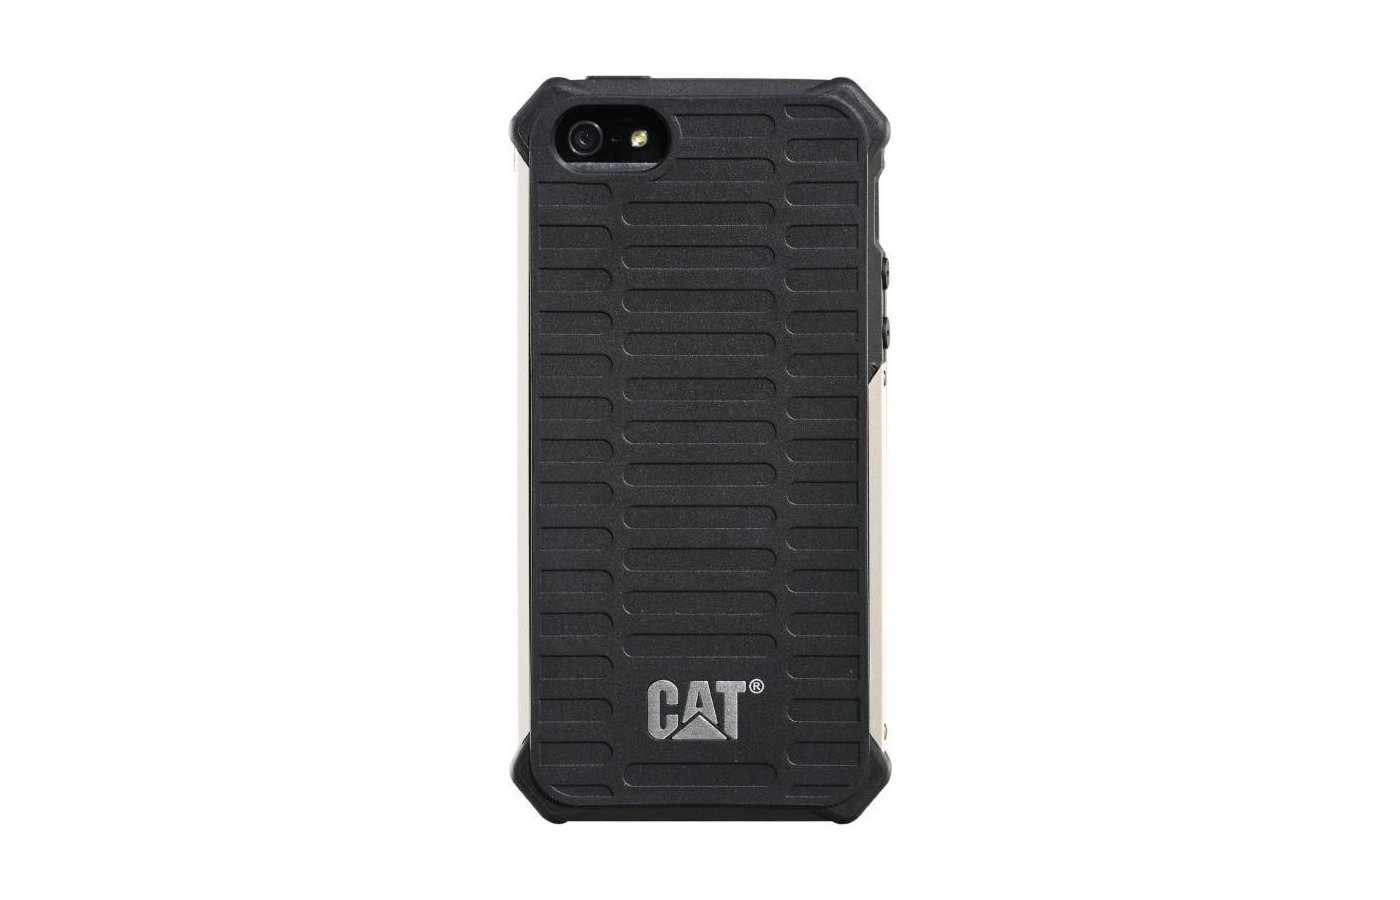 Чехол Caterpillar для iPhone 6/6S Urban black (CUCA-BLSI-I6S)